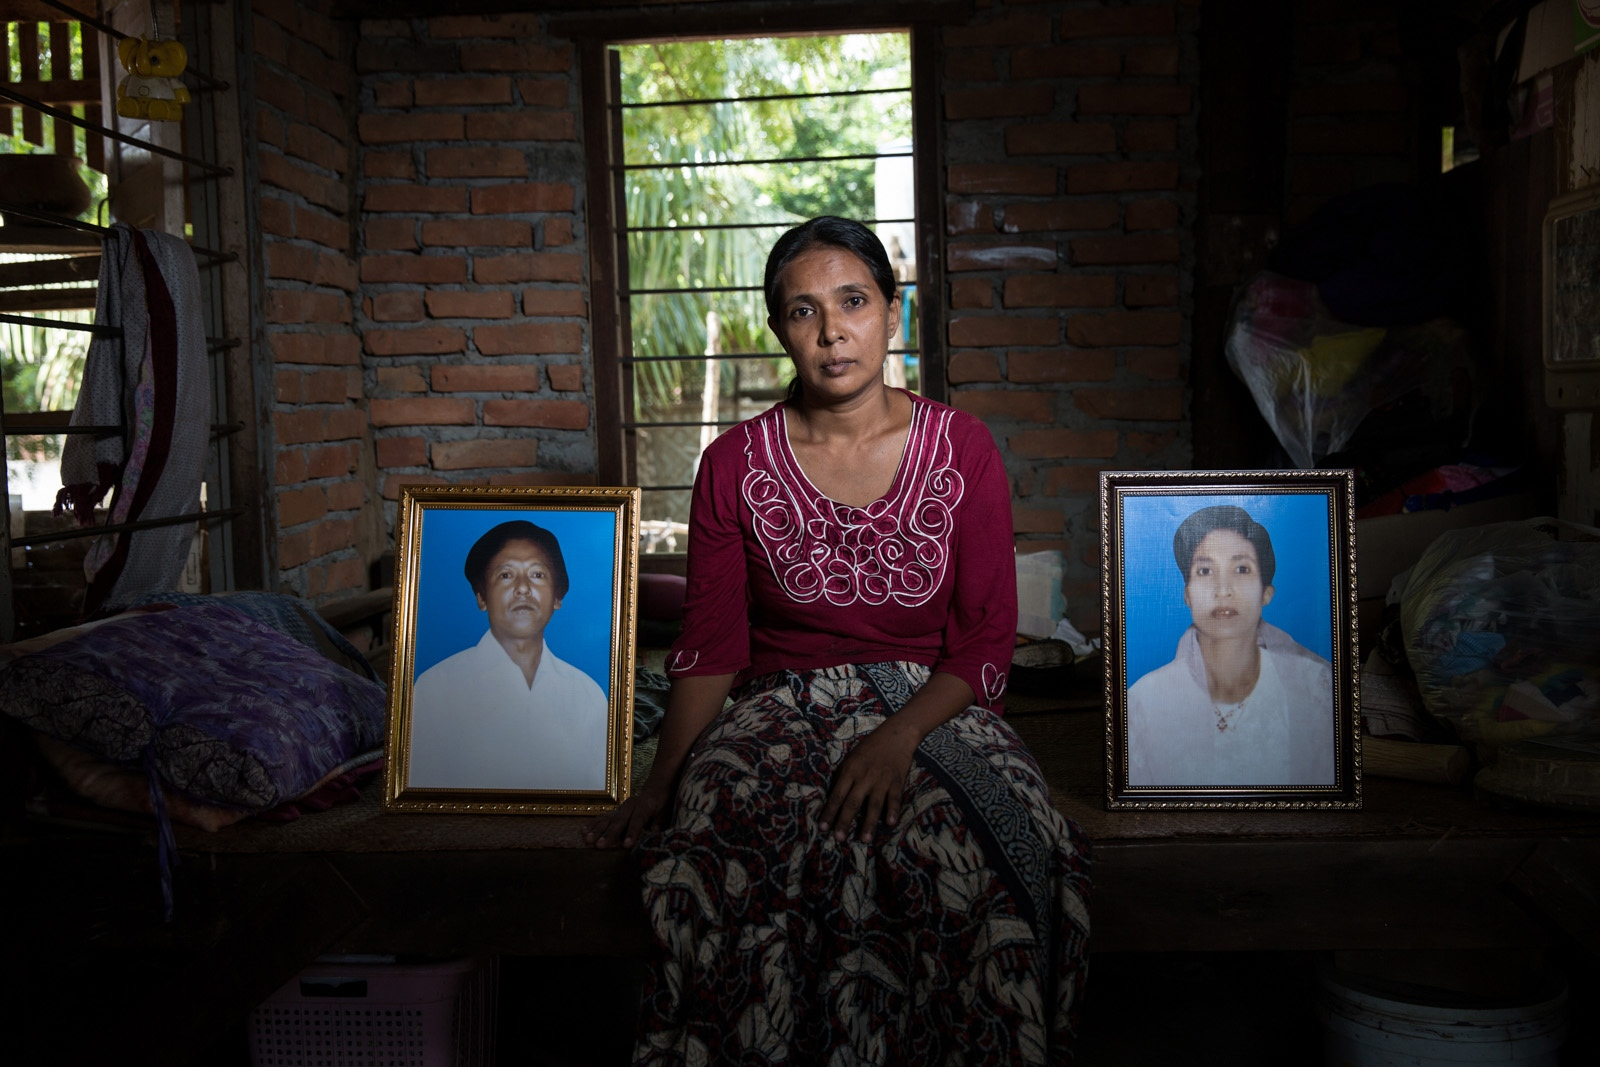 The daughter of arbitrarily detained U Kaung Shin and Daw Khin Thank Myint sits with the portraits of her mother and father in their house. Myanmar military intelligence arrested U Kaung Shin, 66, and Daw Khin Than Myint, 64, on their son's wedding day while they were en route to Kunhein, Shan State on August 4, 2014. On January 12, 2015 the Taunggyi District Court sentenced them in a trial that failed to meet fair trial standards to 14 years imprisonment with hard labor under the sections 5(J) and 5(L) of the 1950 Emergency Provisions Act. In October 2016, the Myanmar government repealed the notoriously controversial 1950 Emergency Provisions Act, yet U Kaung Shin, Daw Khin Than Myint, and others remain detained under the now defunct Act.